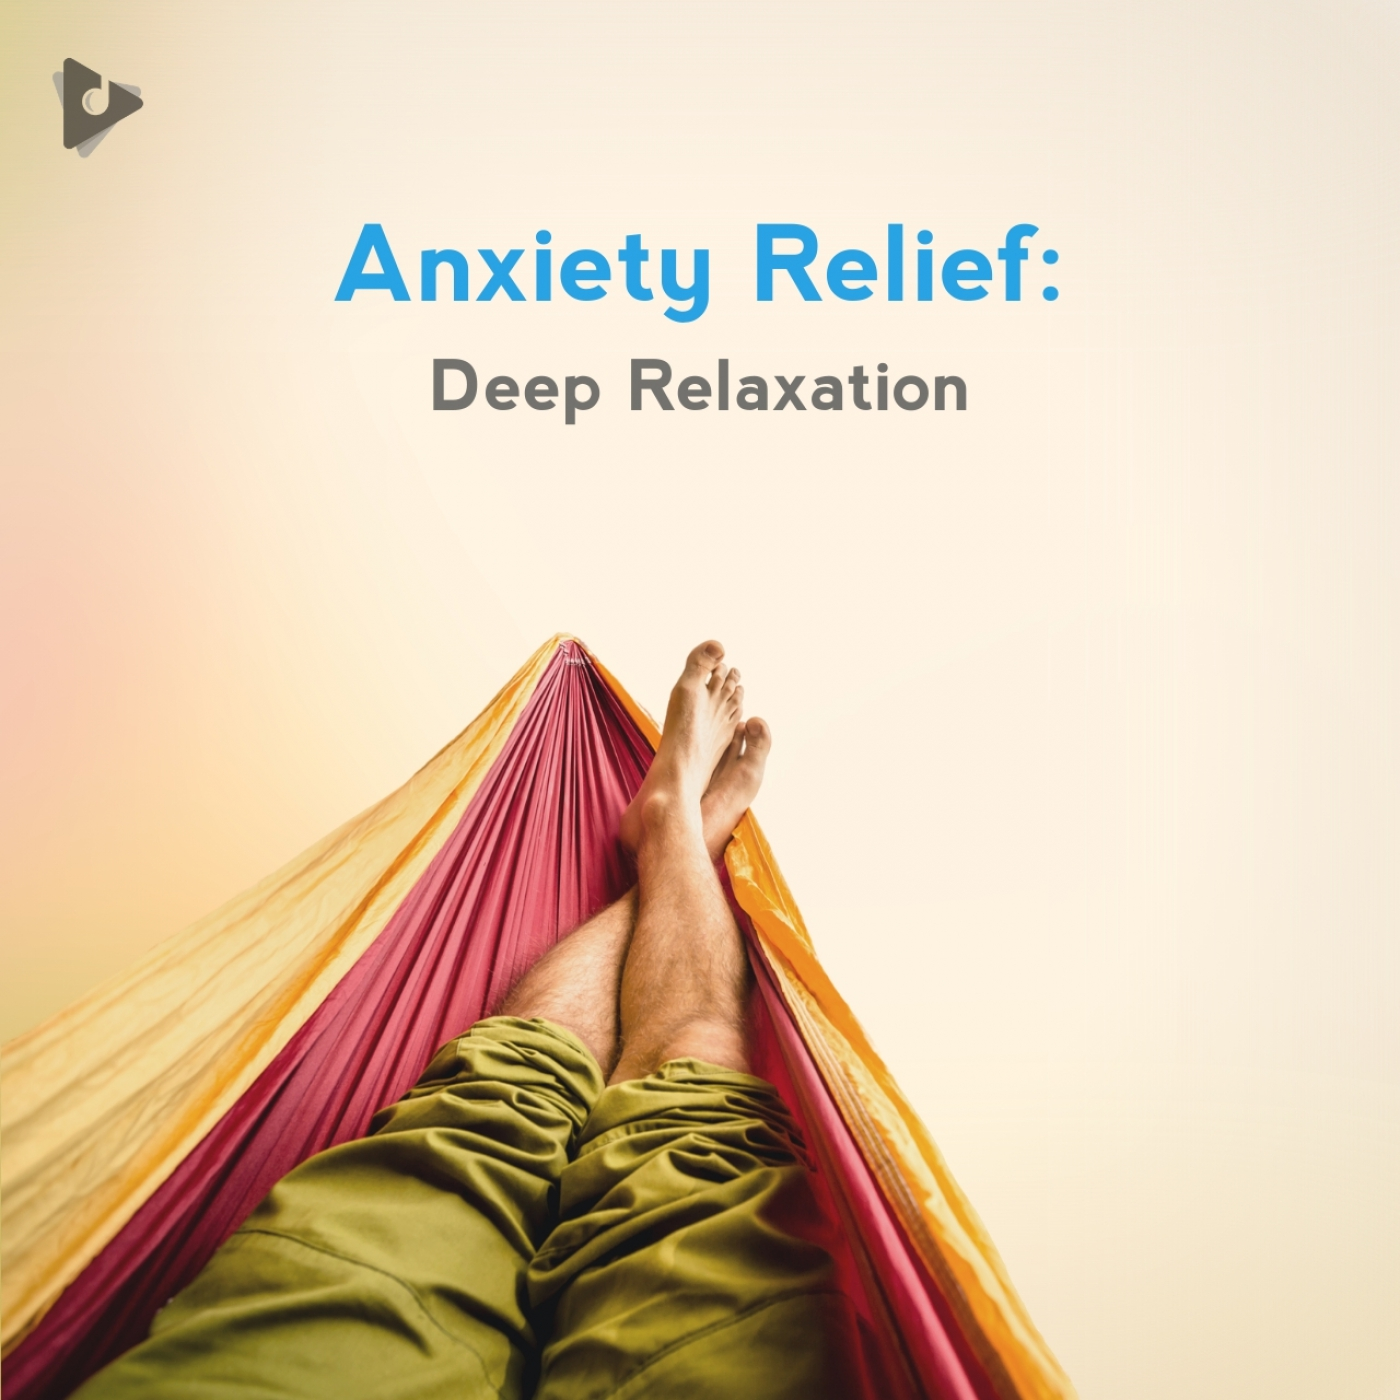 Anxiety Relief: Deep Relaxation